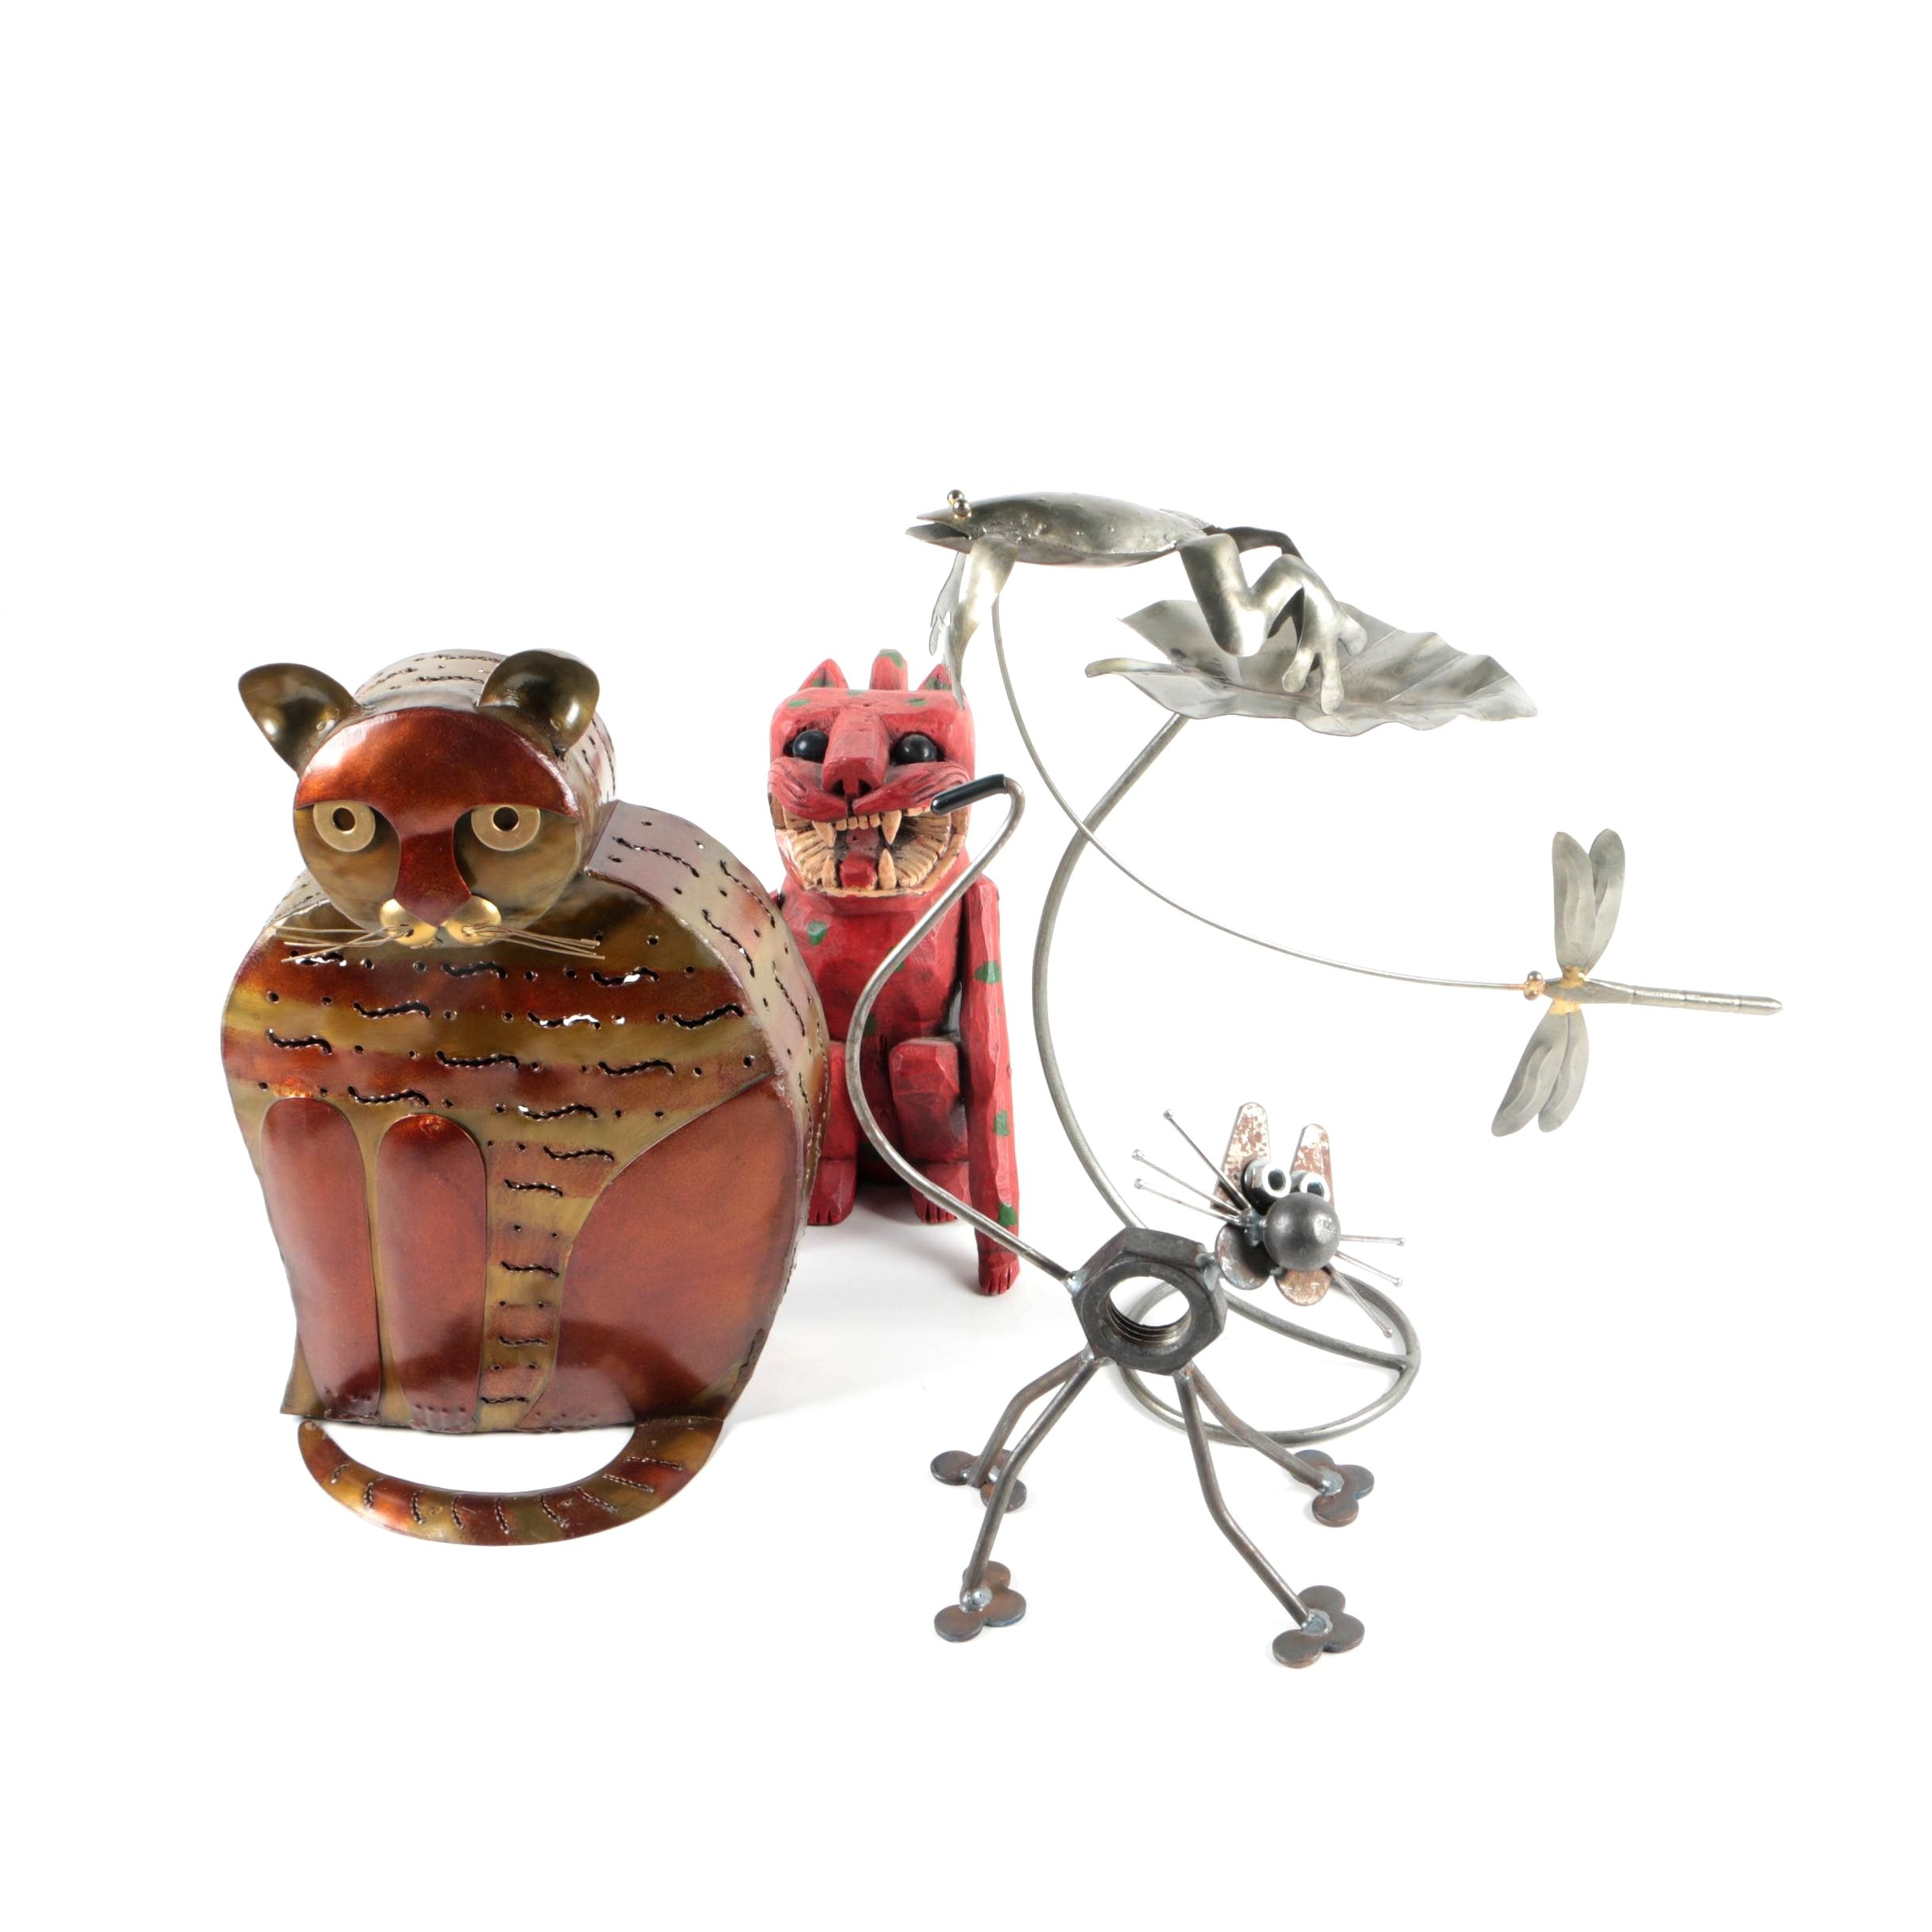 Metal and Wood Cat and Insect Figurines